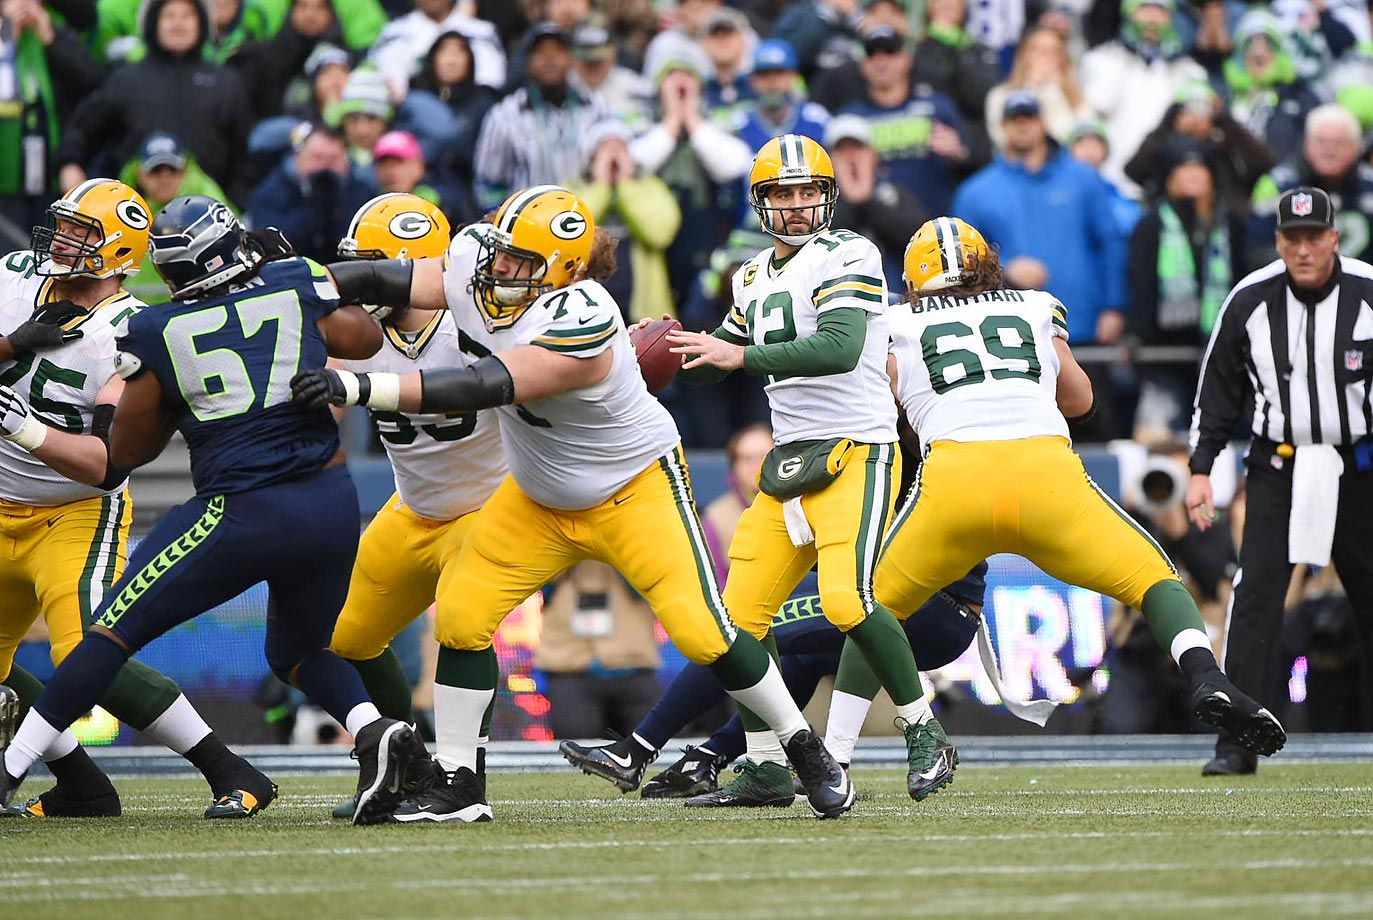 If you were to poll defensive linemen on who the best guard in the NFL is, Green Bay's Josh Sitton would win going away. In 2014, he played next to fifth-round rookie Corey Linsley, who surprised a lot of people by grabbing that starting spot right away. Right guard T.J. Lang has overcome technical issues to round out the best interior offensive line Aaron Rodgers has ever enjoyed. With David Bakhtiari and Bryan Bulaga guarding the edges, Green Bay's high-tech passing offense is in very good hands.